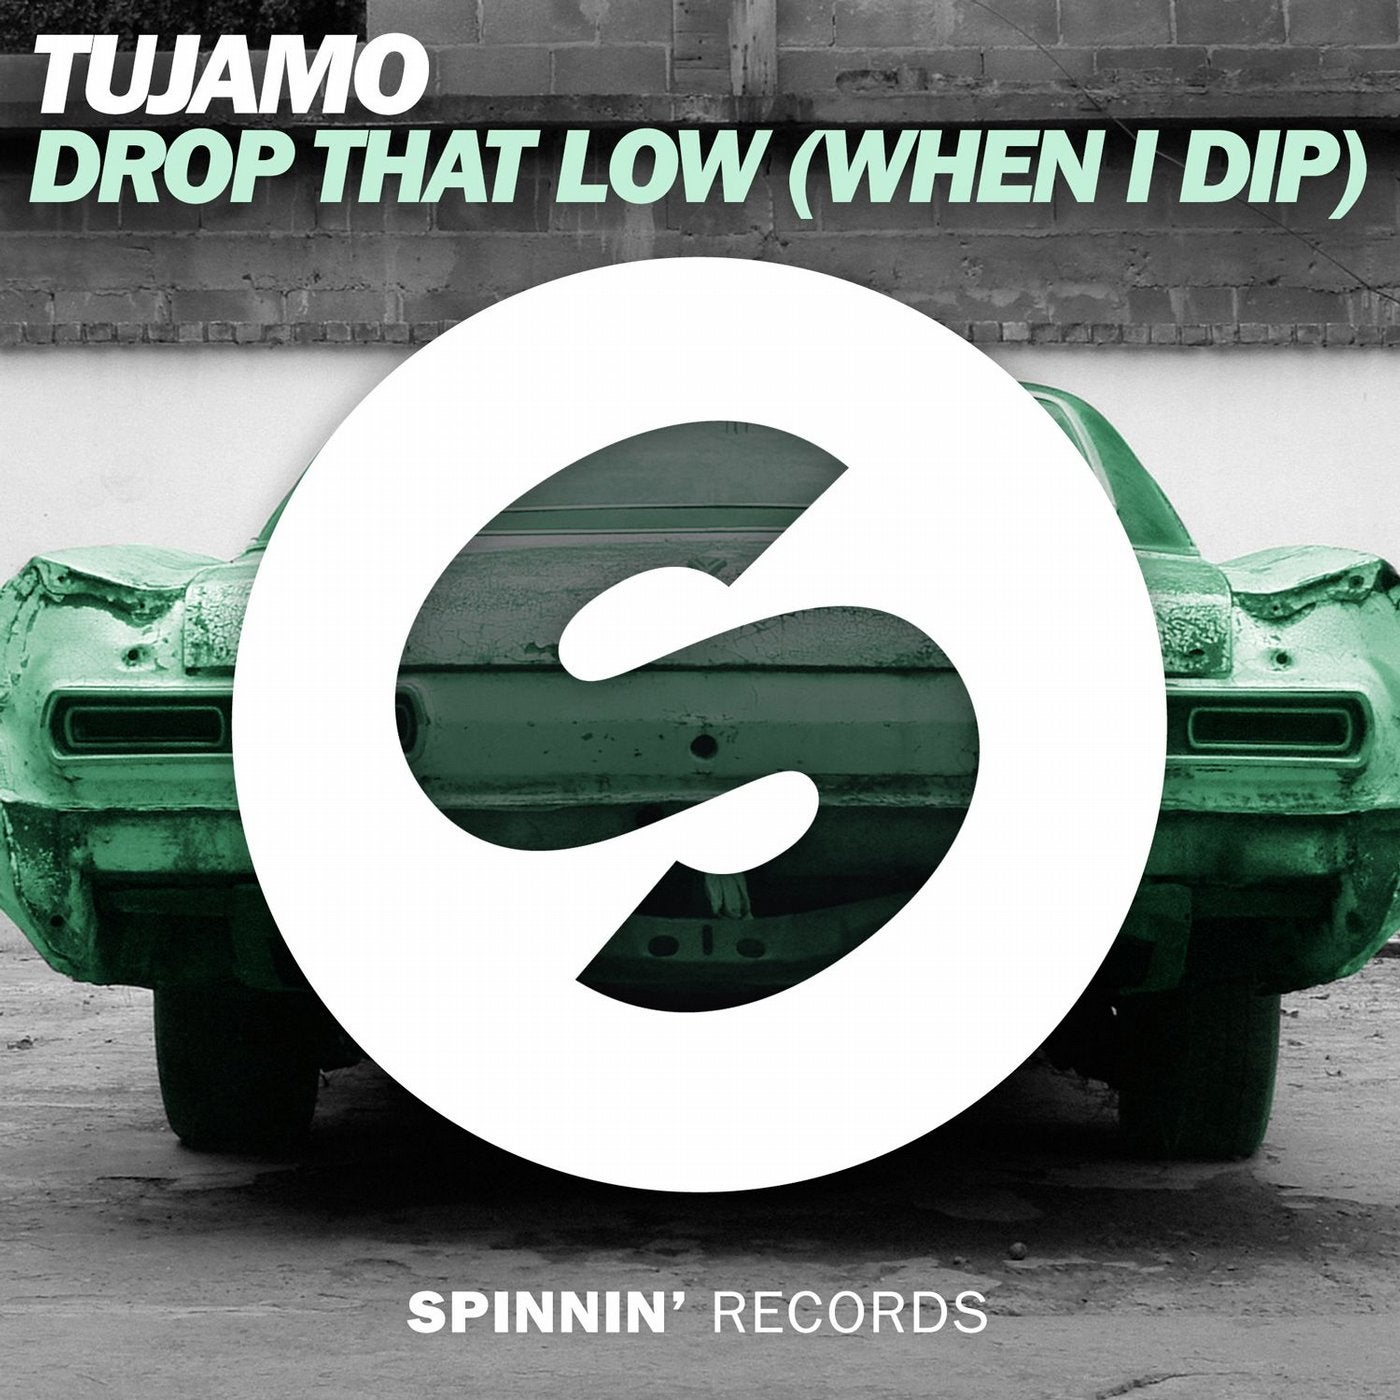 Drop That Low (When I Dip) (Extended Mix)